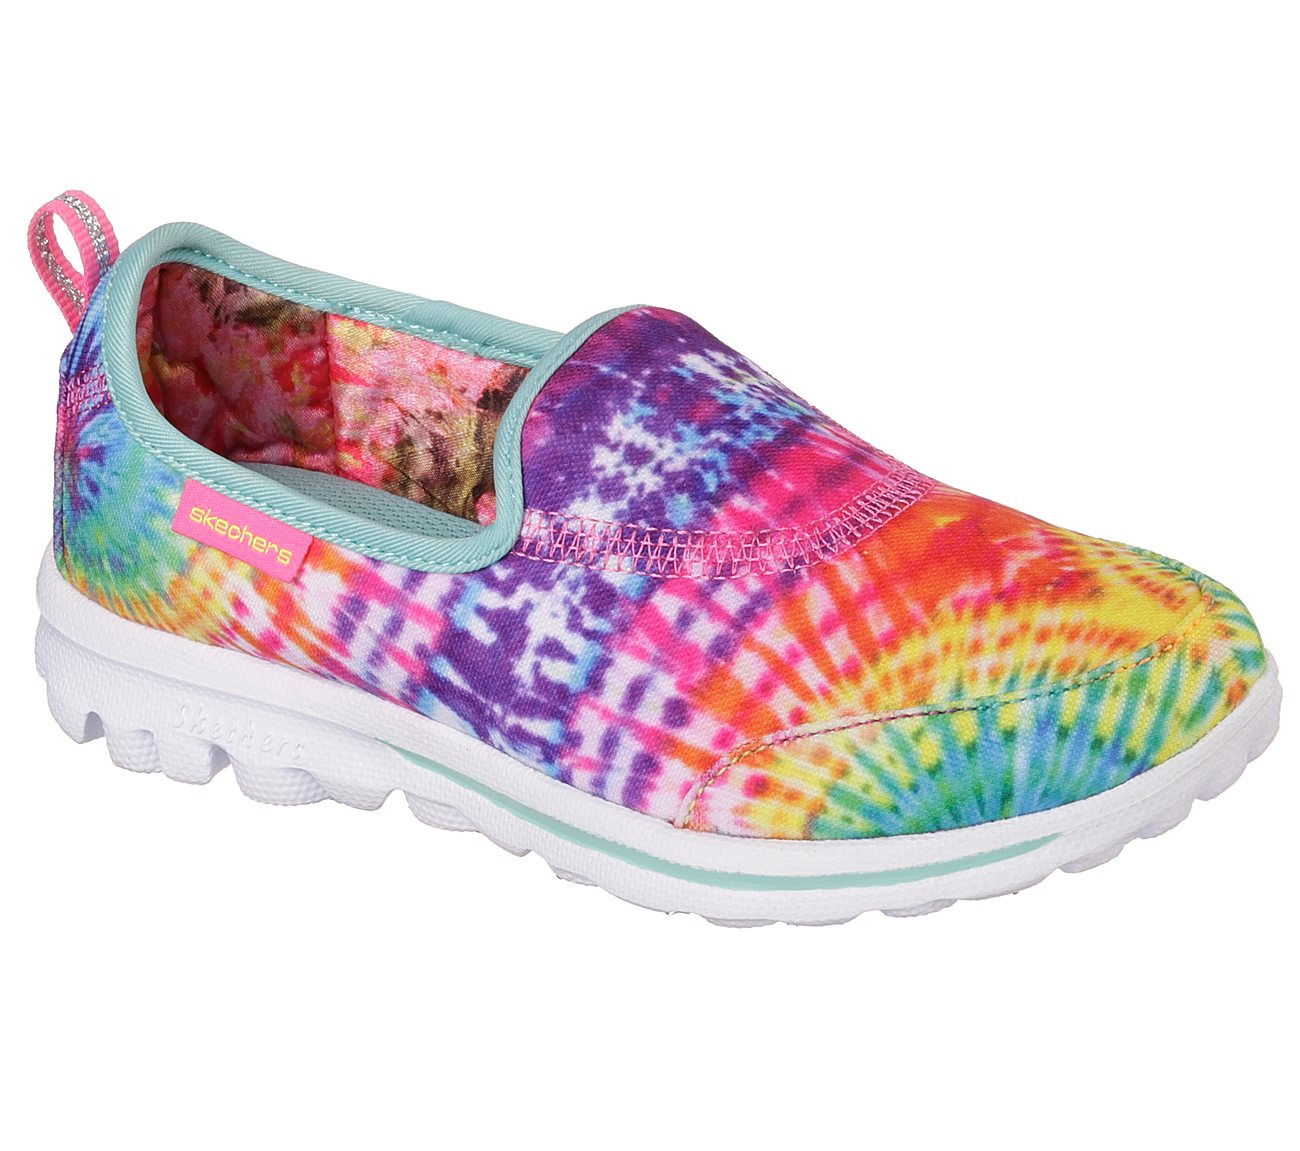 New Sales are Here! 25% Off Skechers Go Walk Max Mens